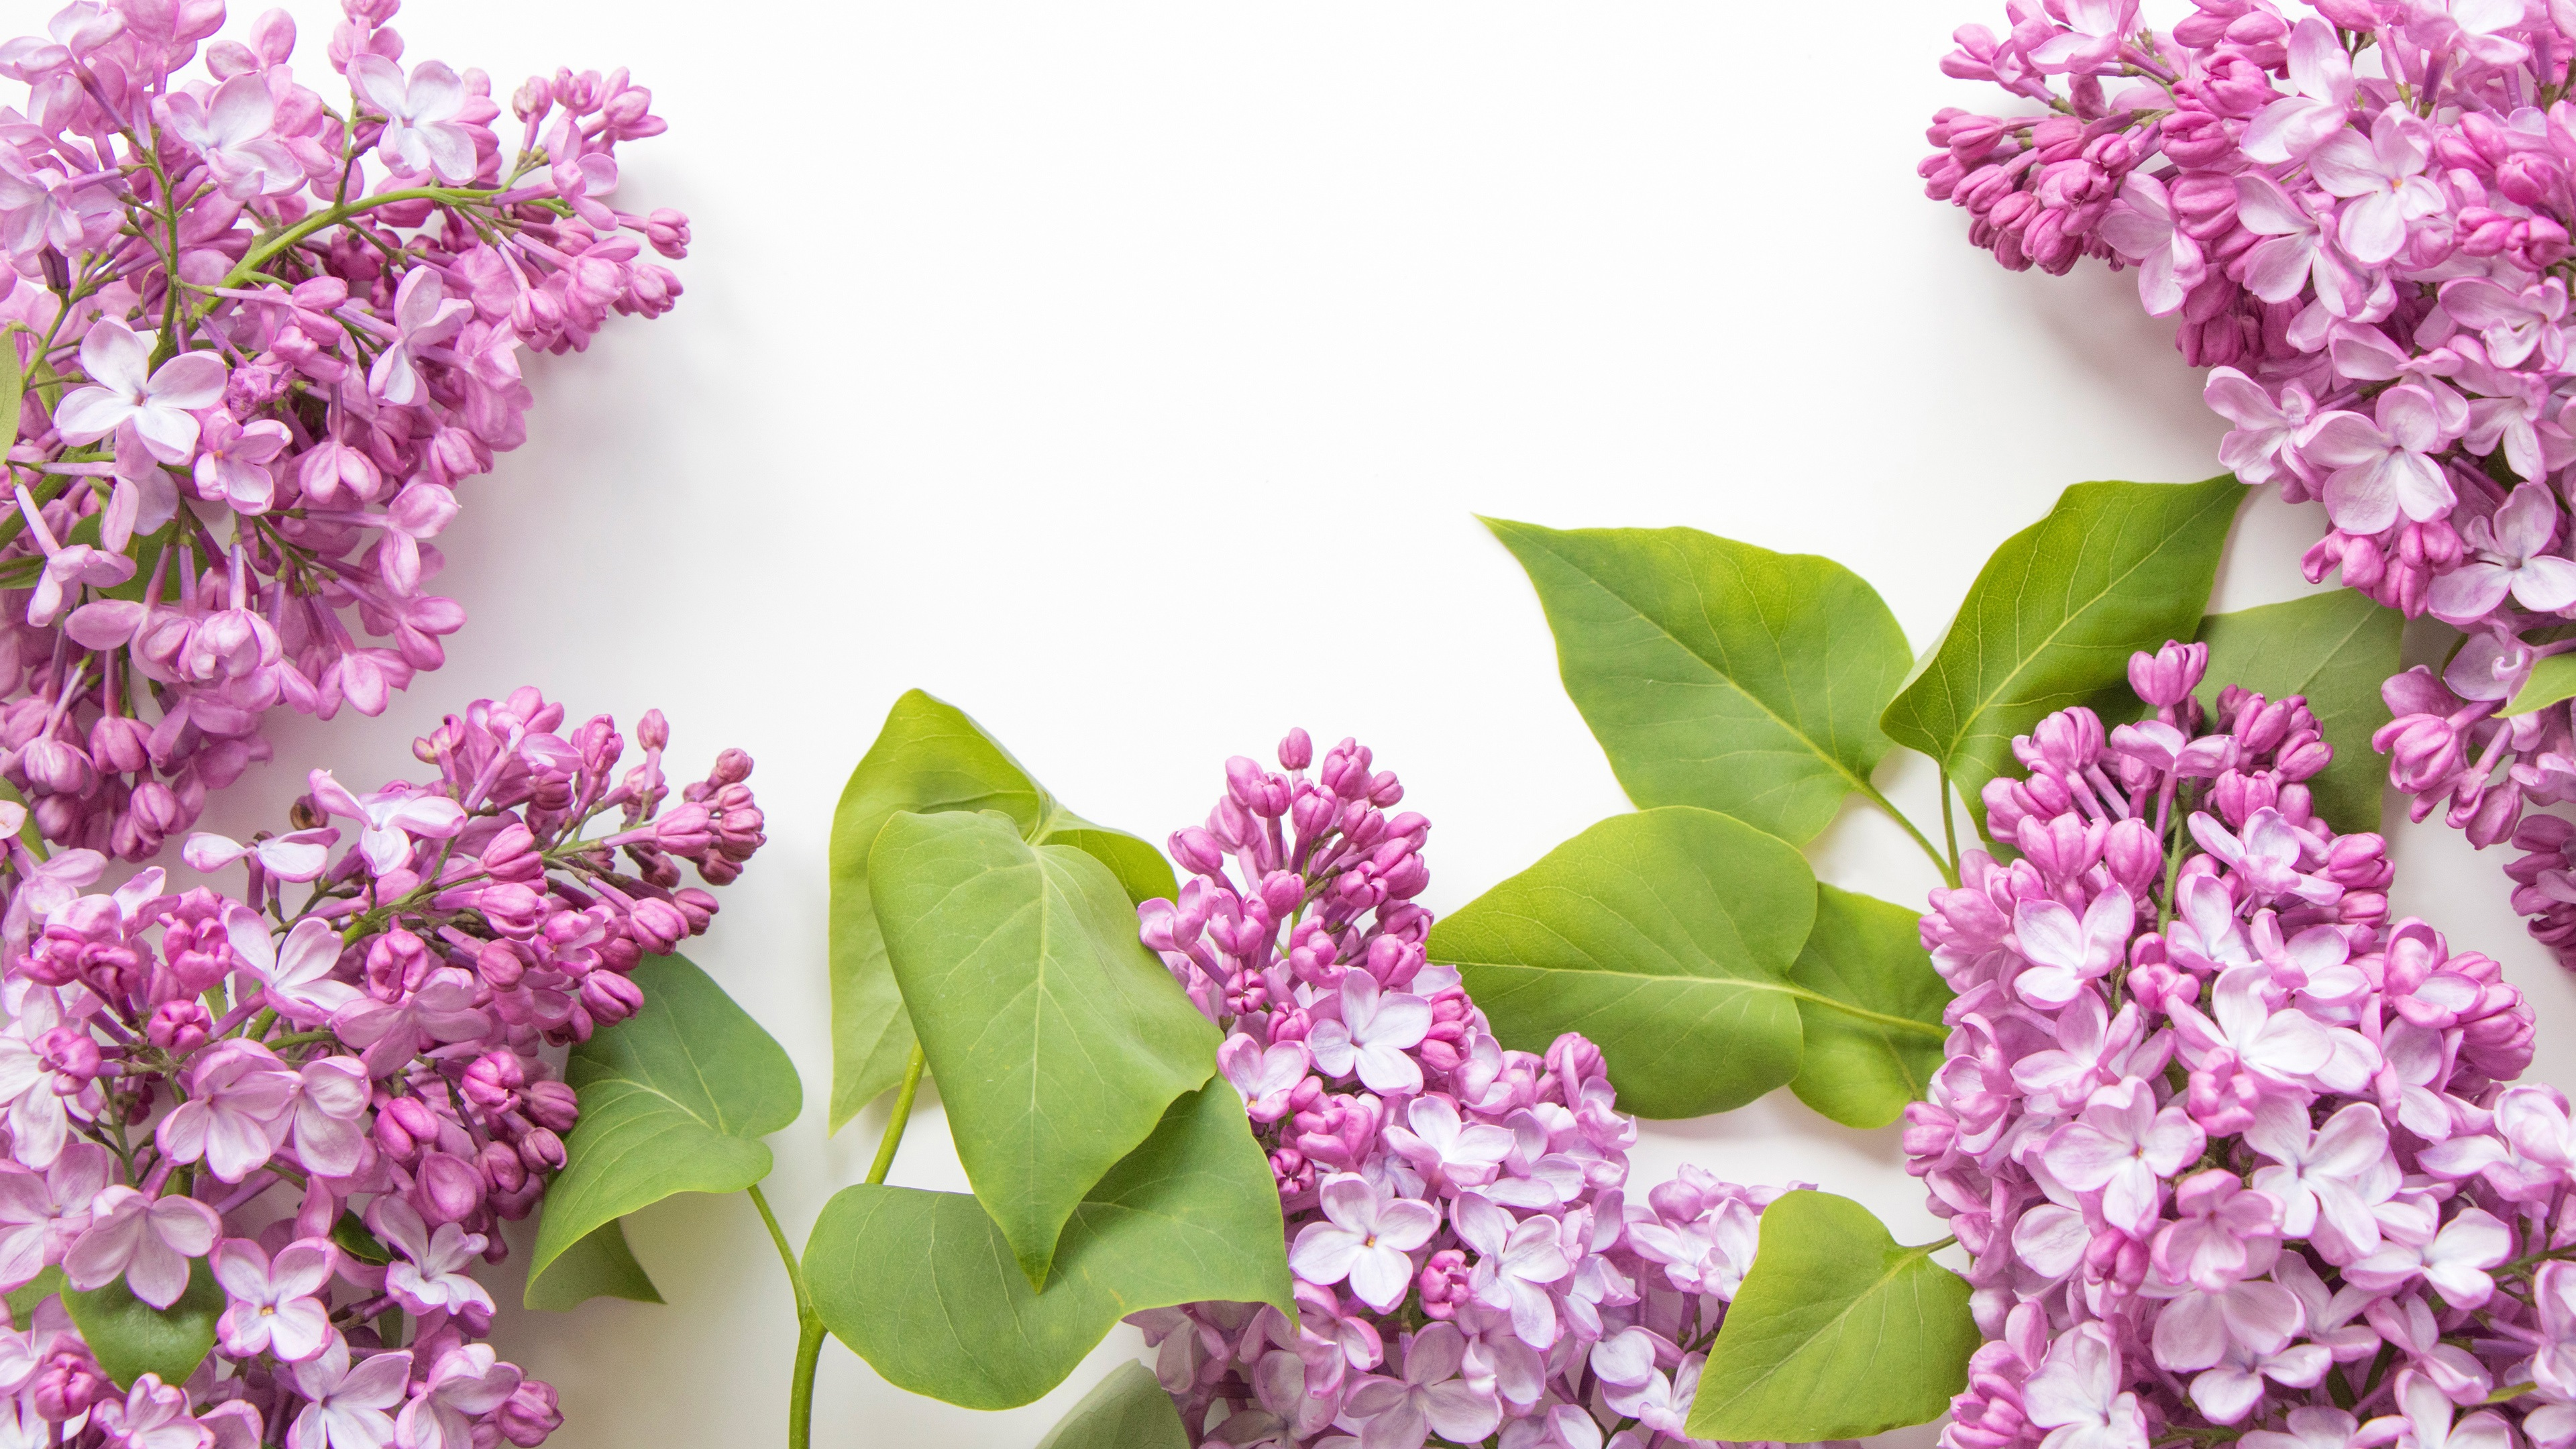 Wallpaper Pink Lilac Flowers White Background 3840x2160 Uhd 4k